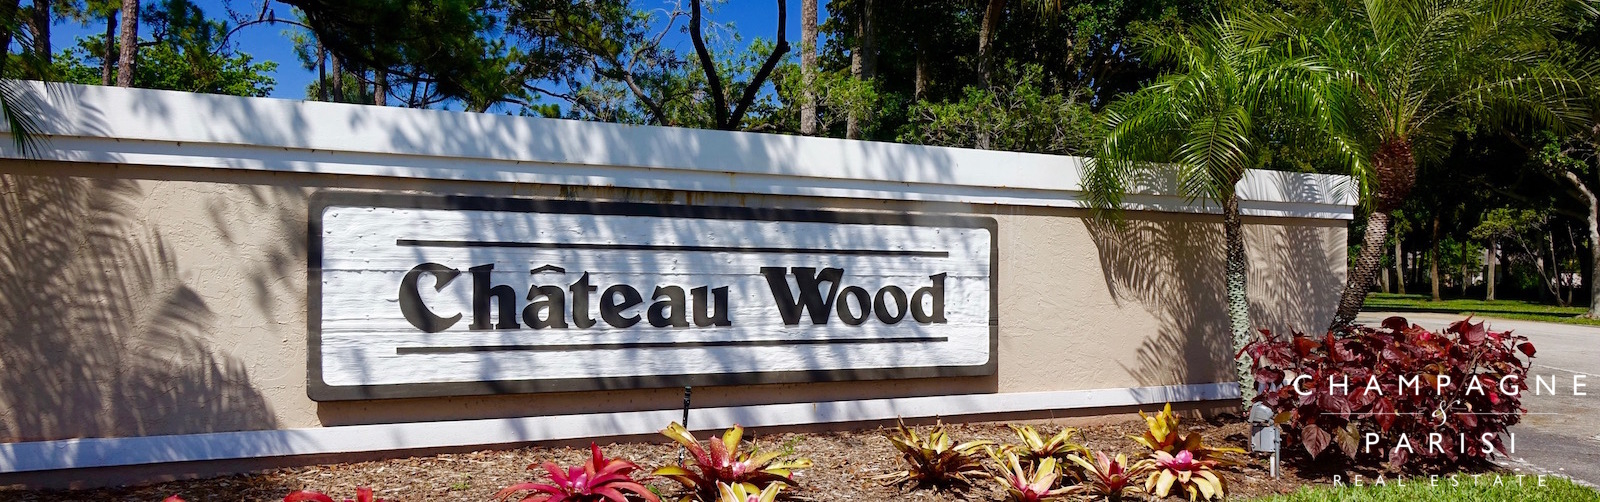 chateau wood townhomes for sale